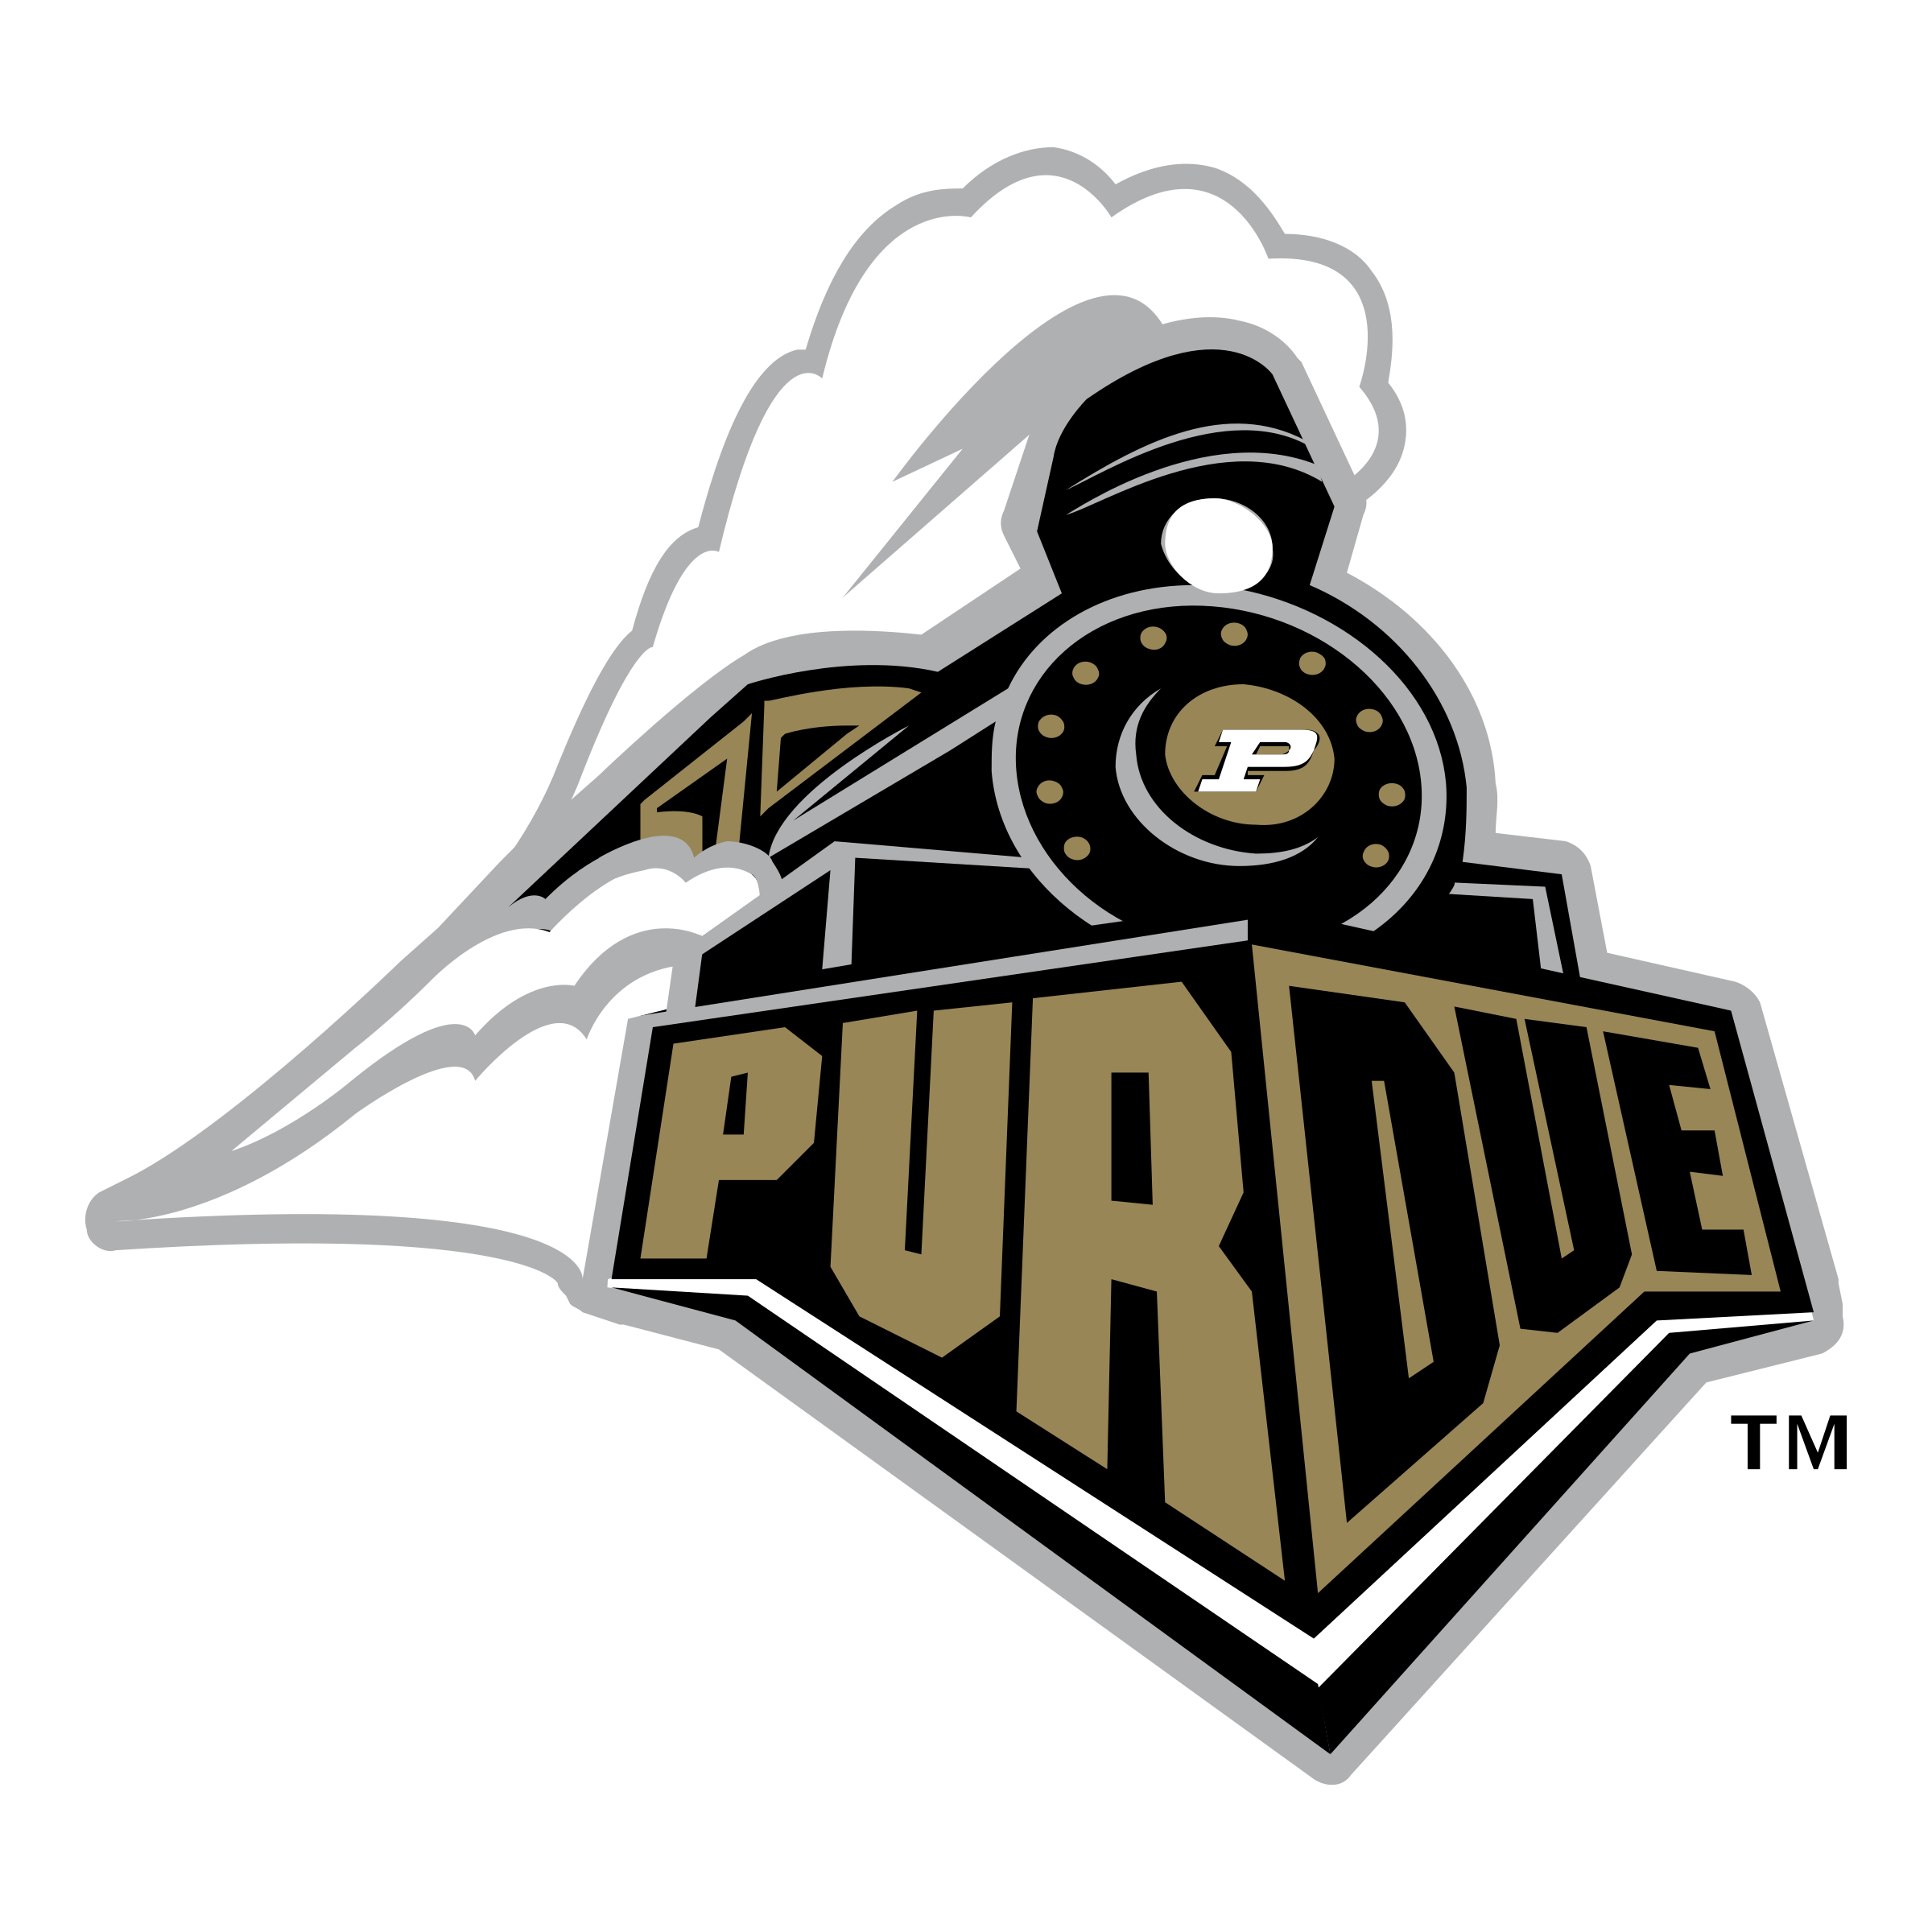 Pin By Janice Anderson On Purdue In 2020 Purdue Logo Purdue Purdue University